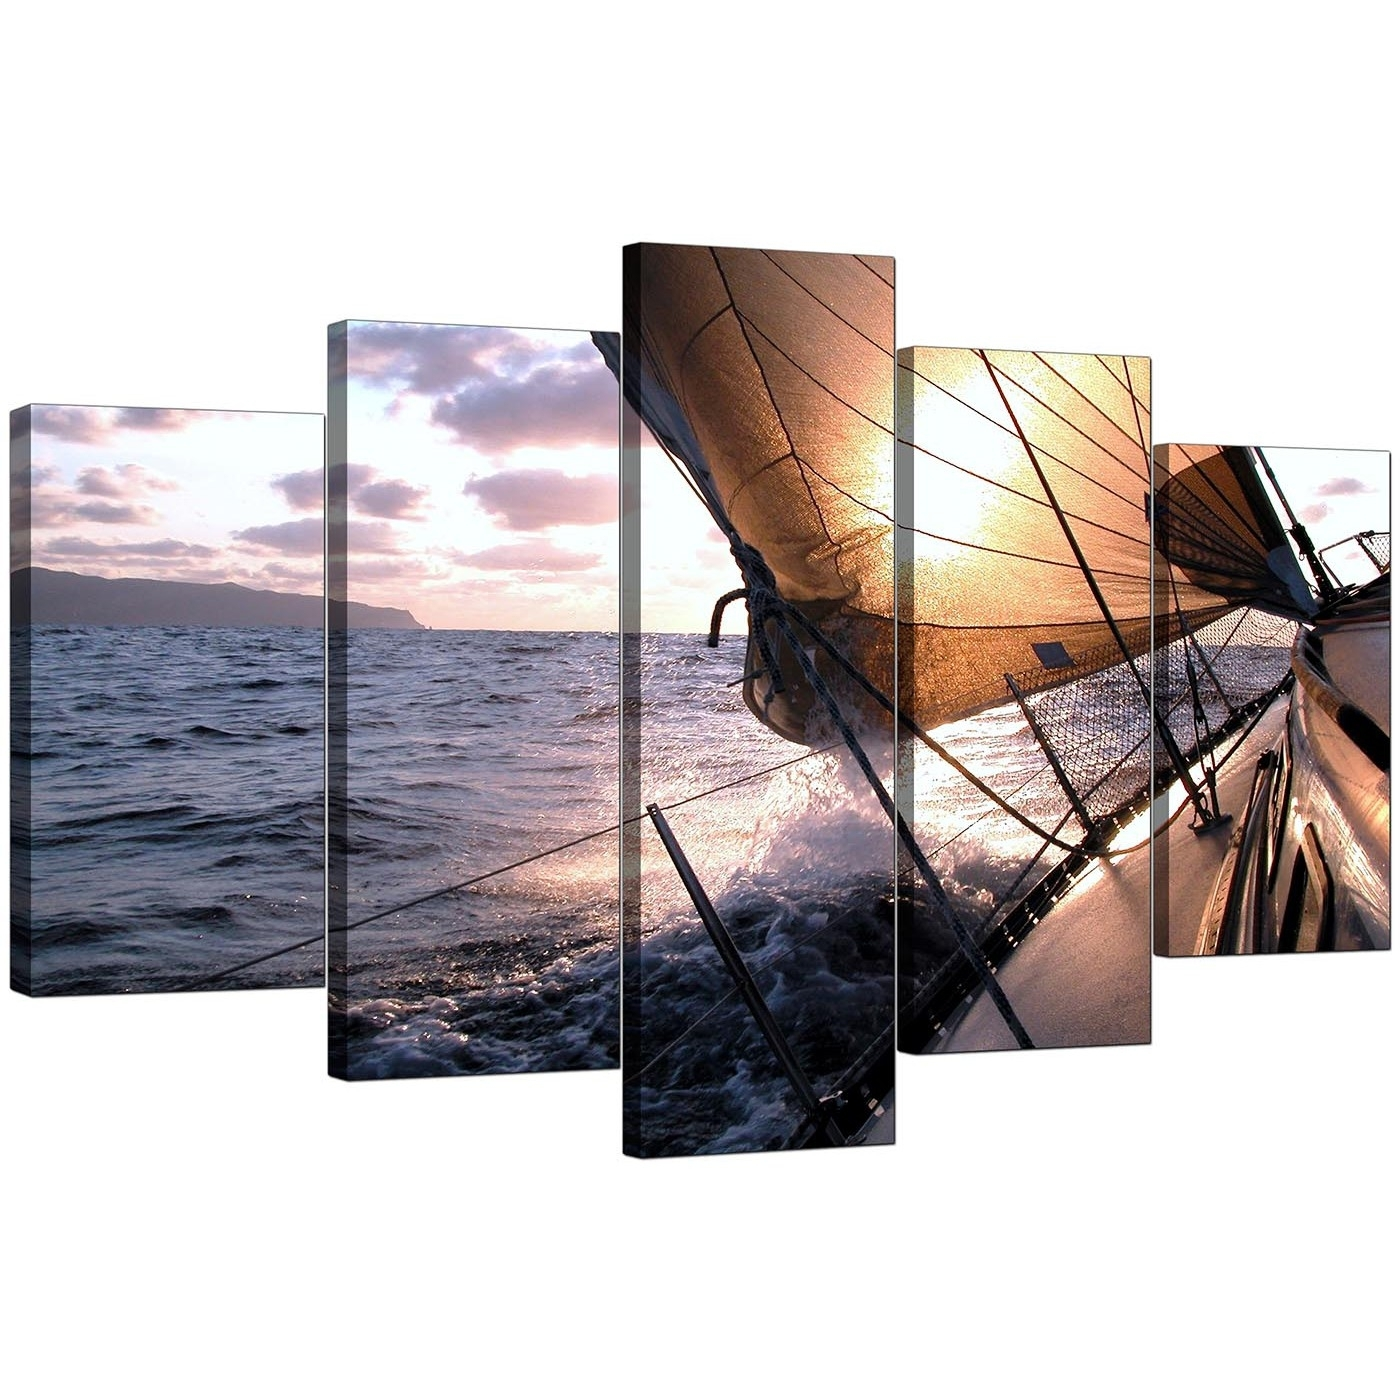 Boat Canvas Prints Uk For Your Living Room – 5 Piece Regarding Most Recent Five Piece Canvas Wall Art (View 10 of 20)